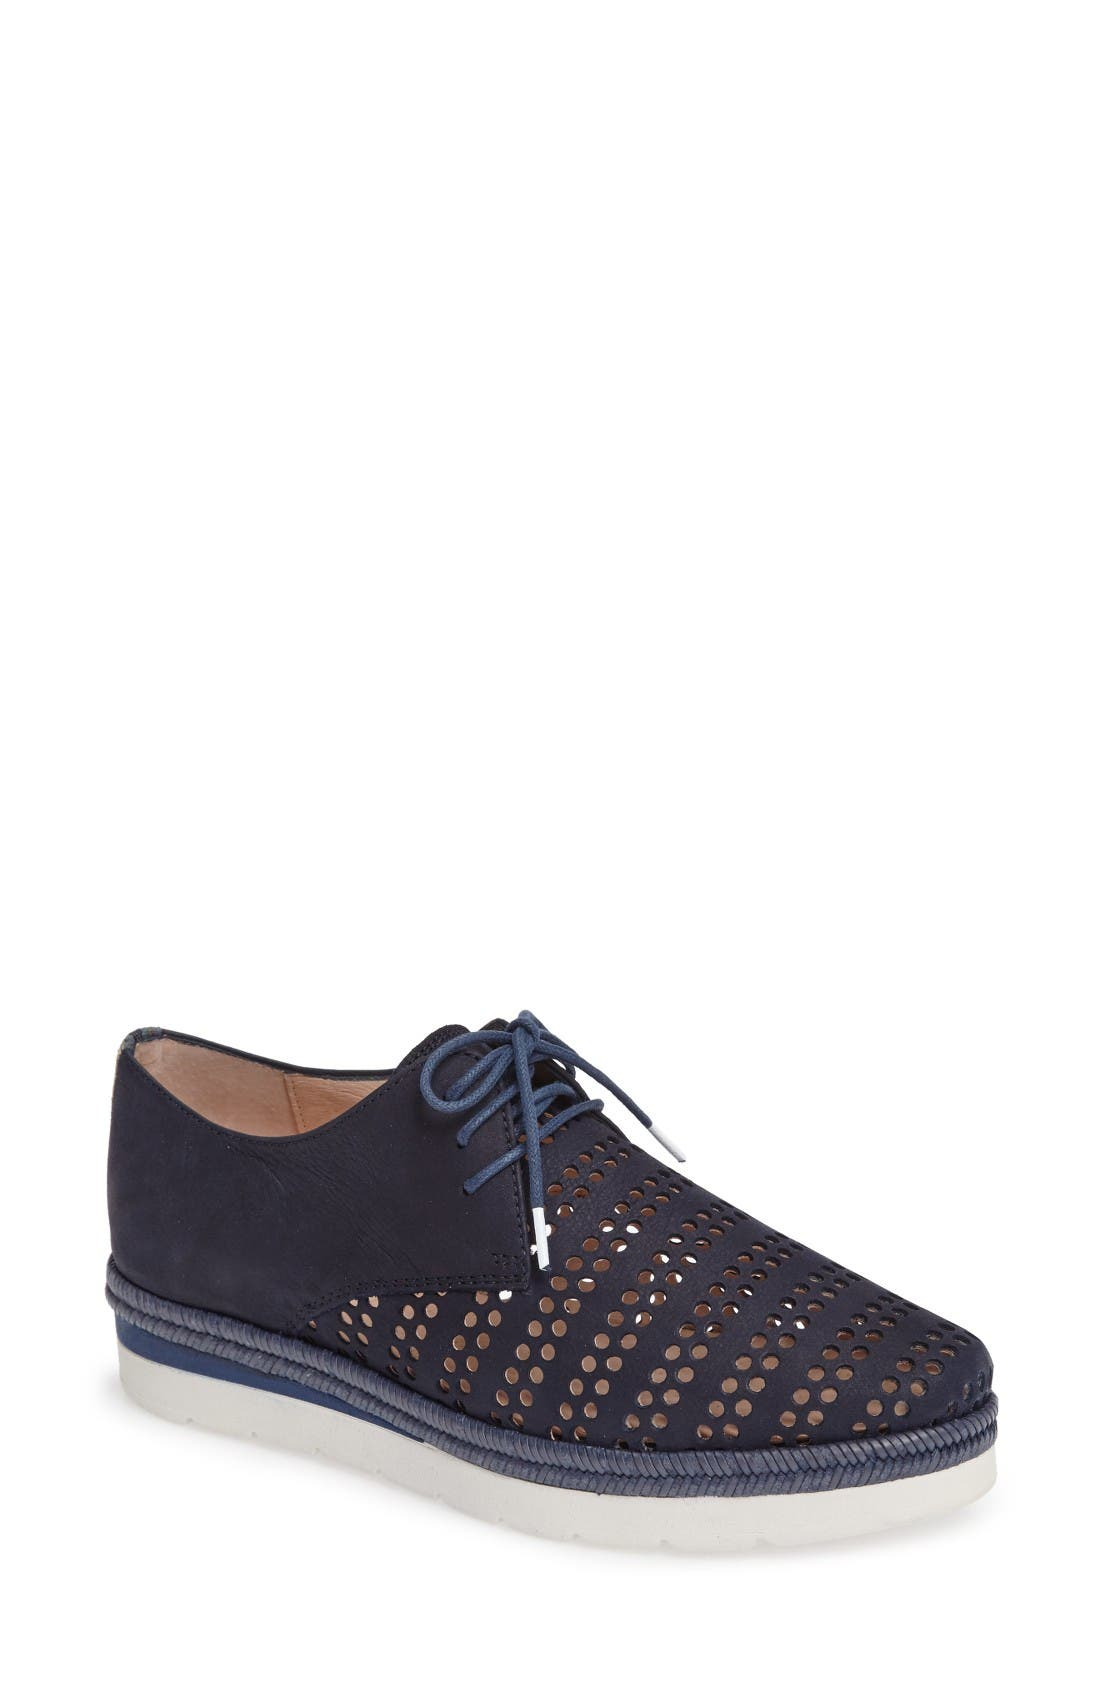 HISPANITAS 'Laken' Perforated Platform Derby